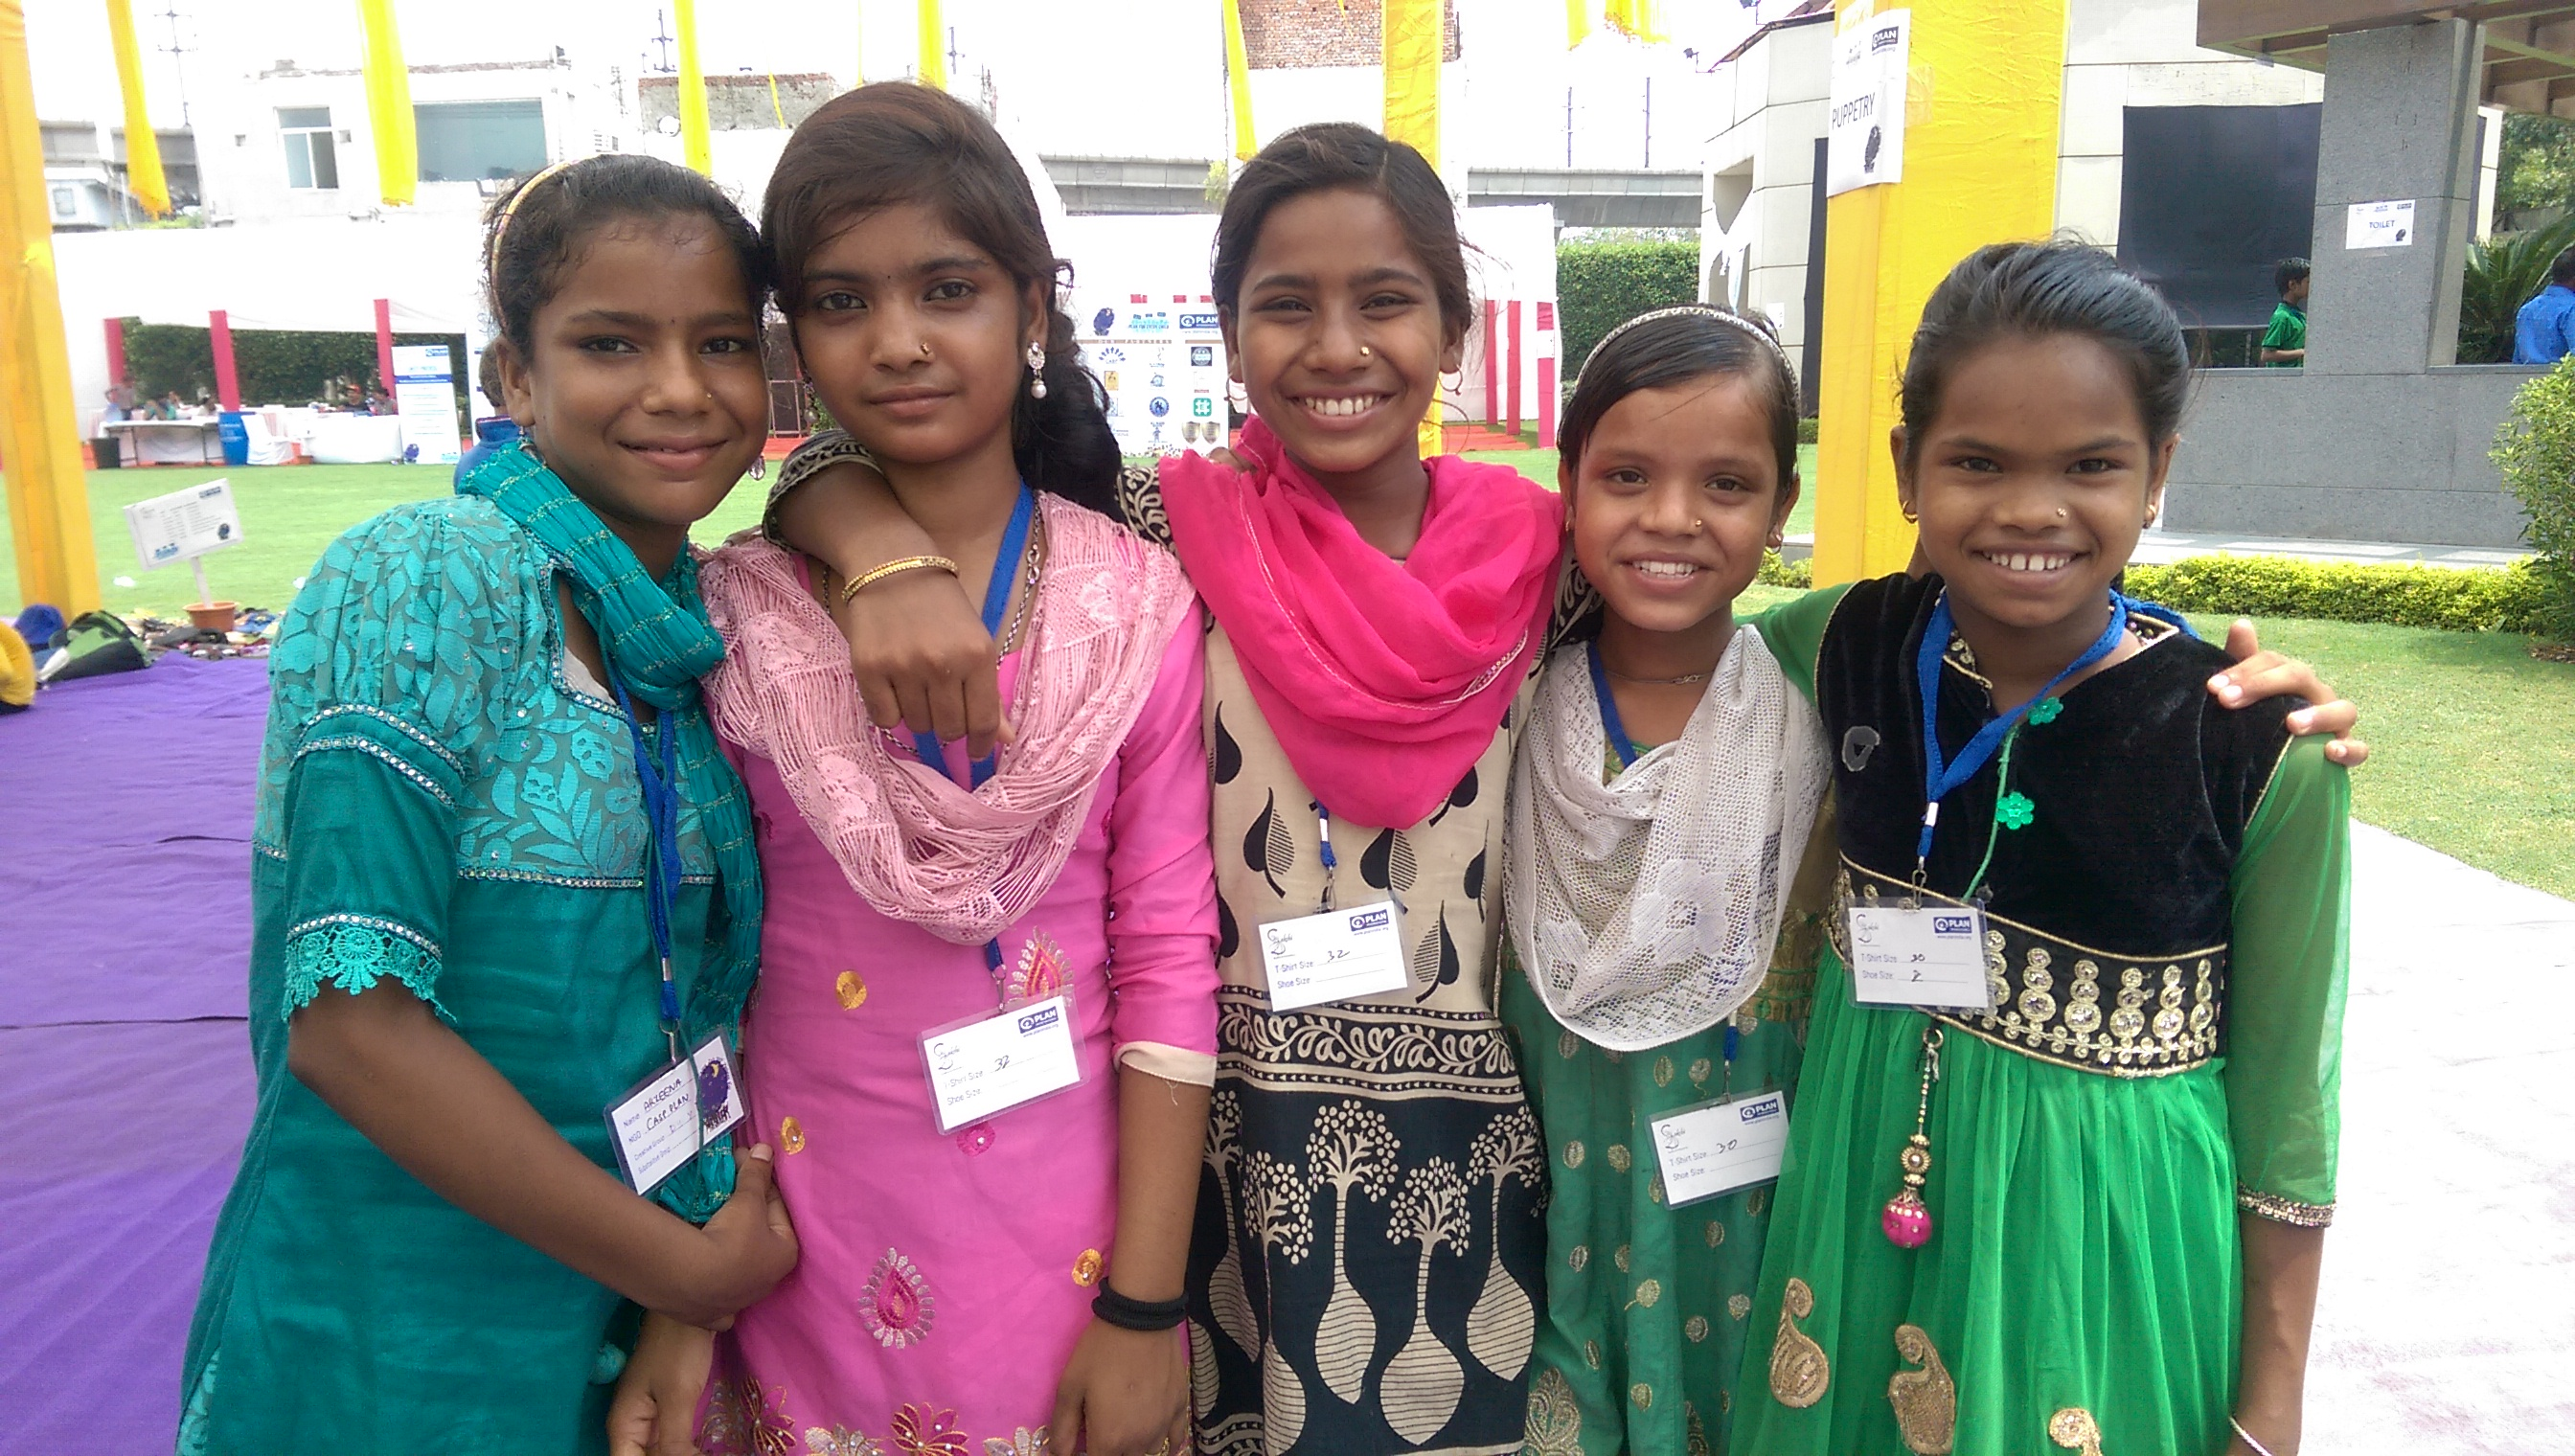 TBI Blogs: Once a Ragpicker, 12-Year-Old Namita Now Dreams of Becoming a Teacher. And You Know What? She Could!